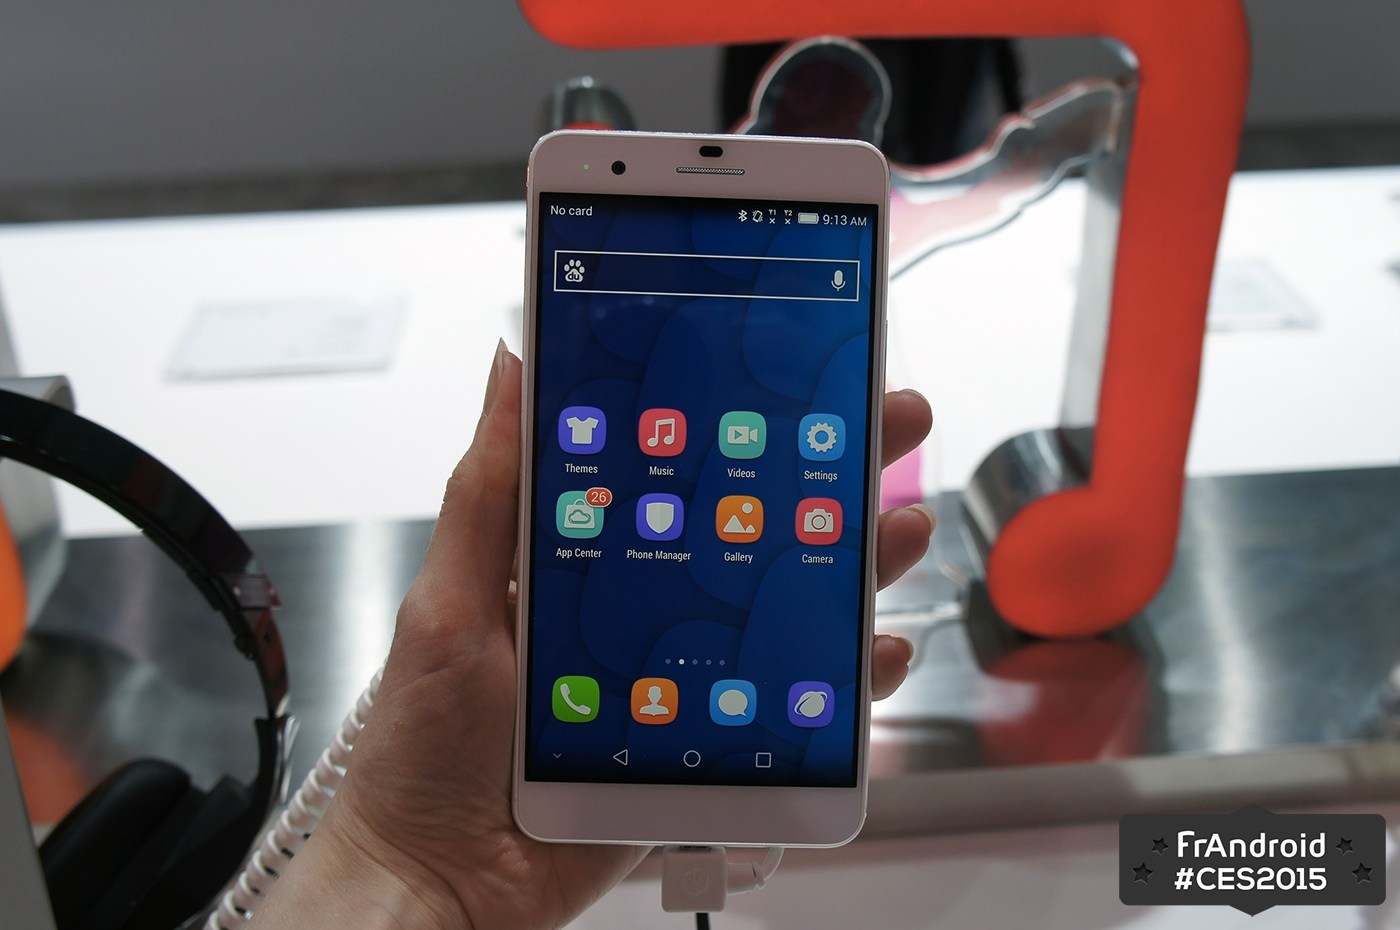 Prise en main du Honor 6 Plus, la phablette au double capteur photo dorsal